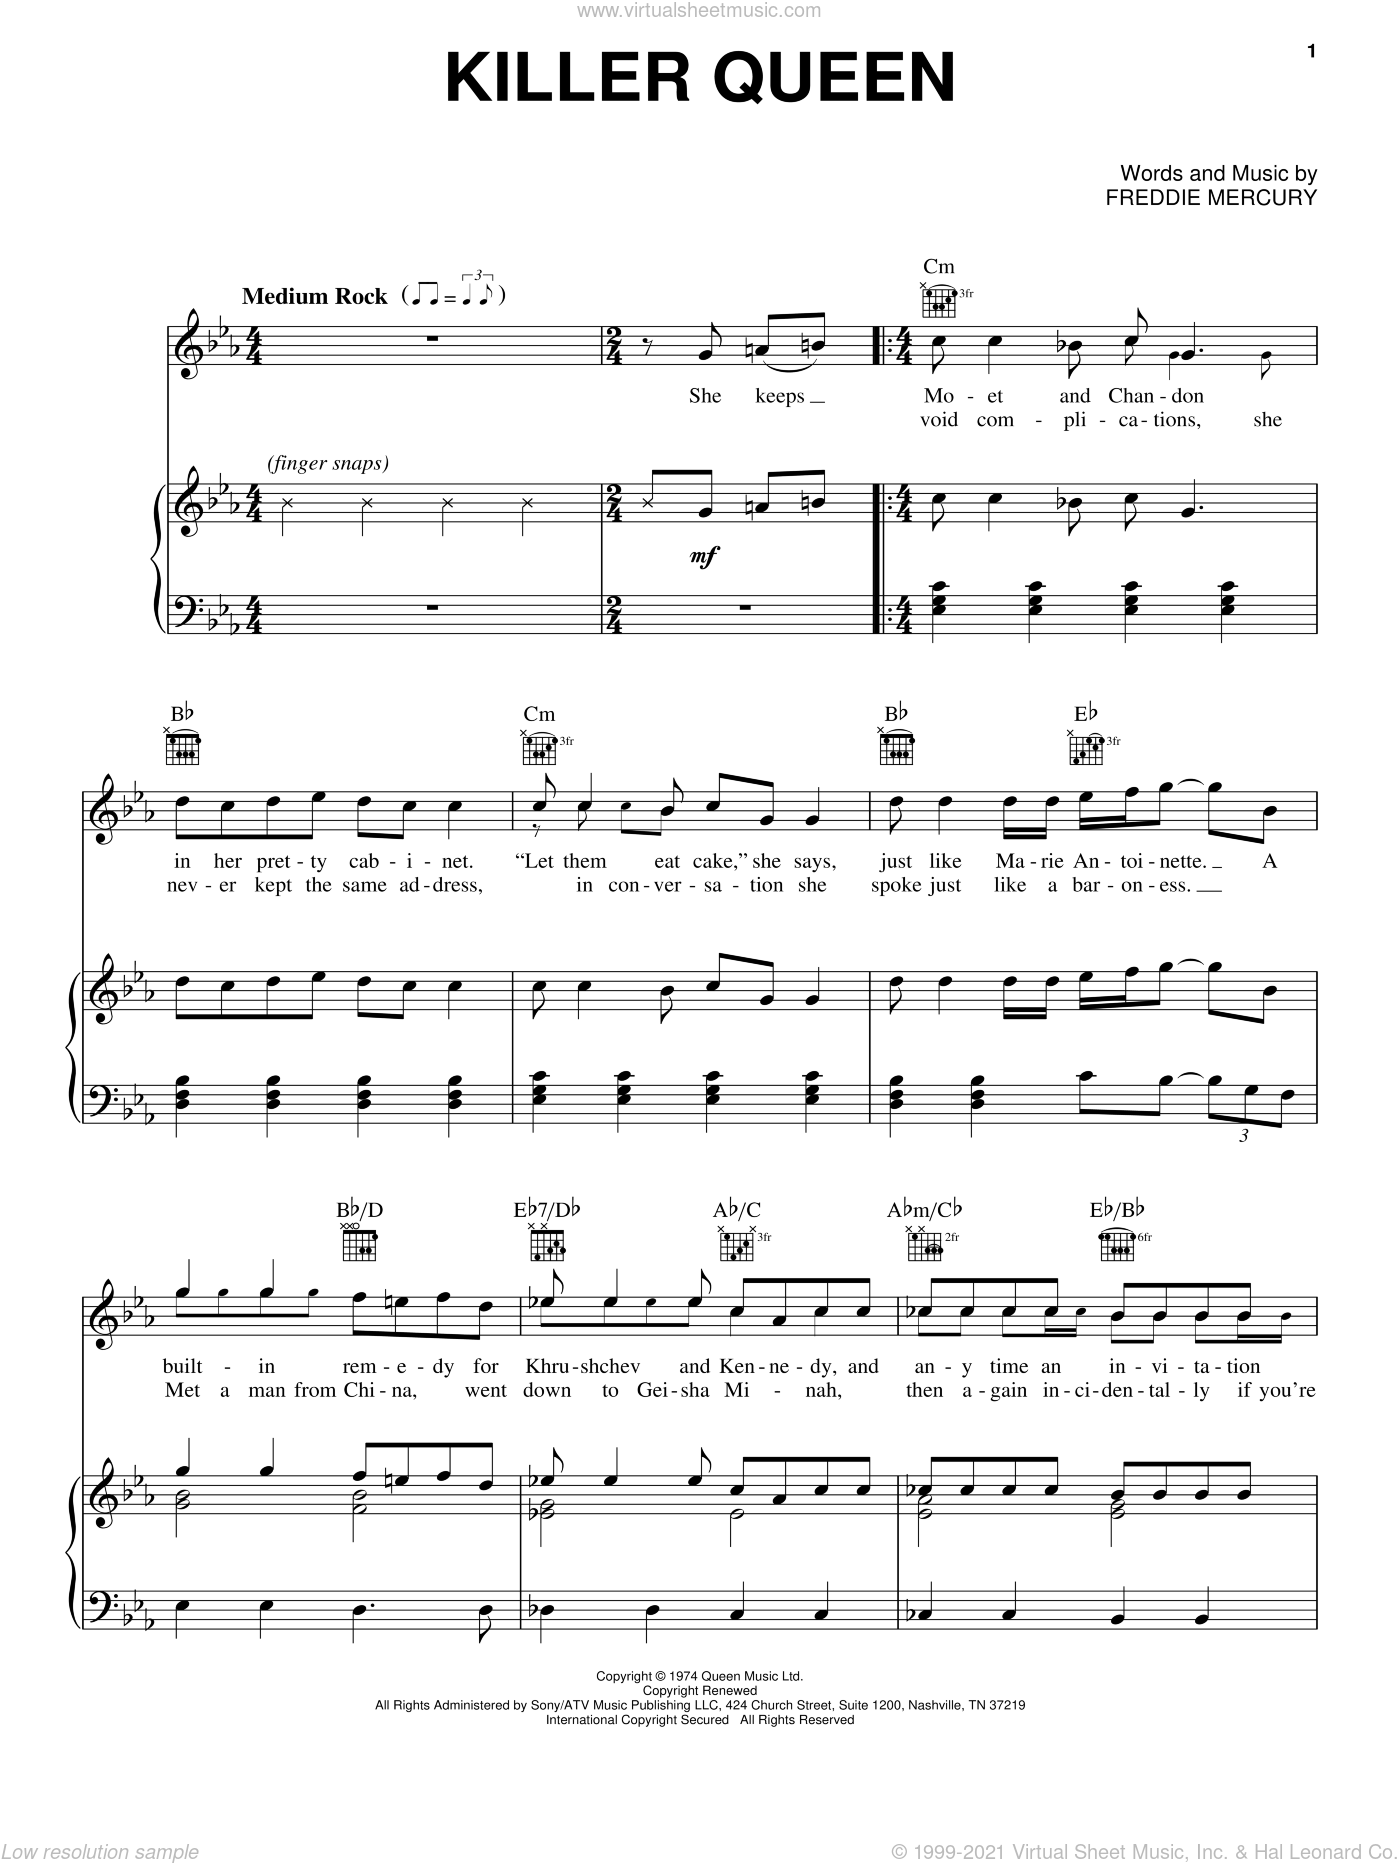 Killer Queen sheet music for voice, piano or guitar by Queen and Freddie Mercury, intermediate skill level